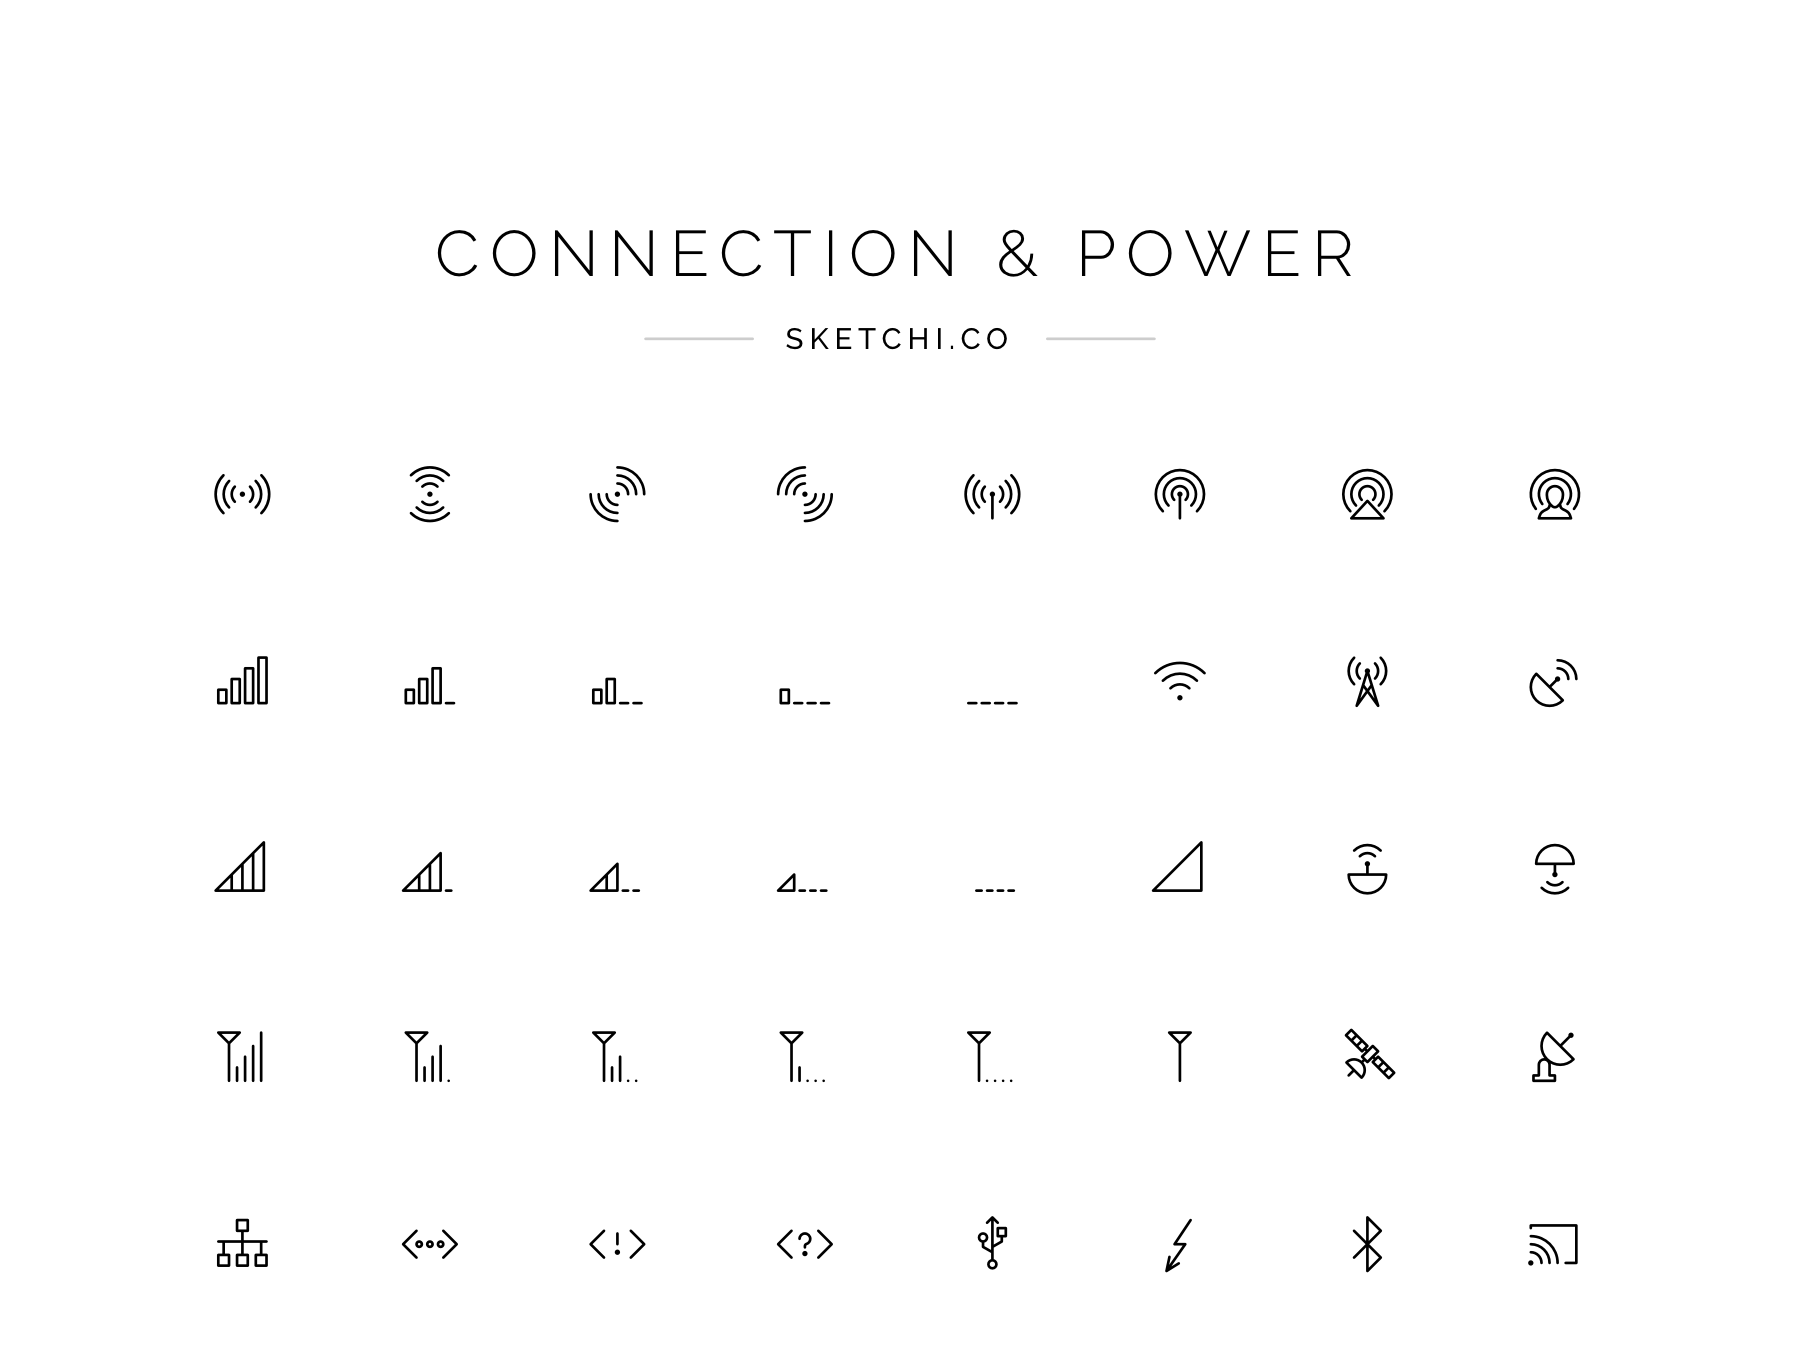 Connection and power icons